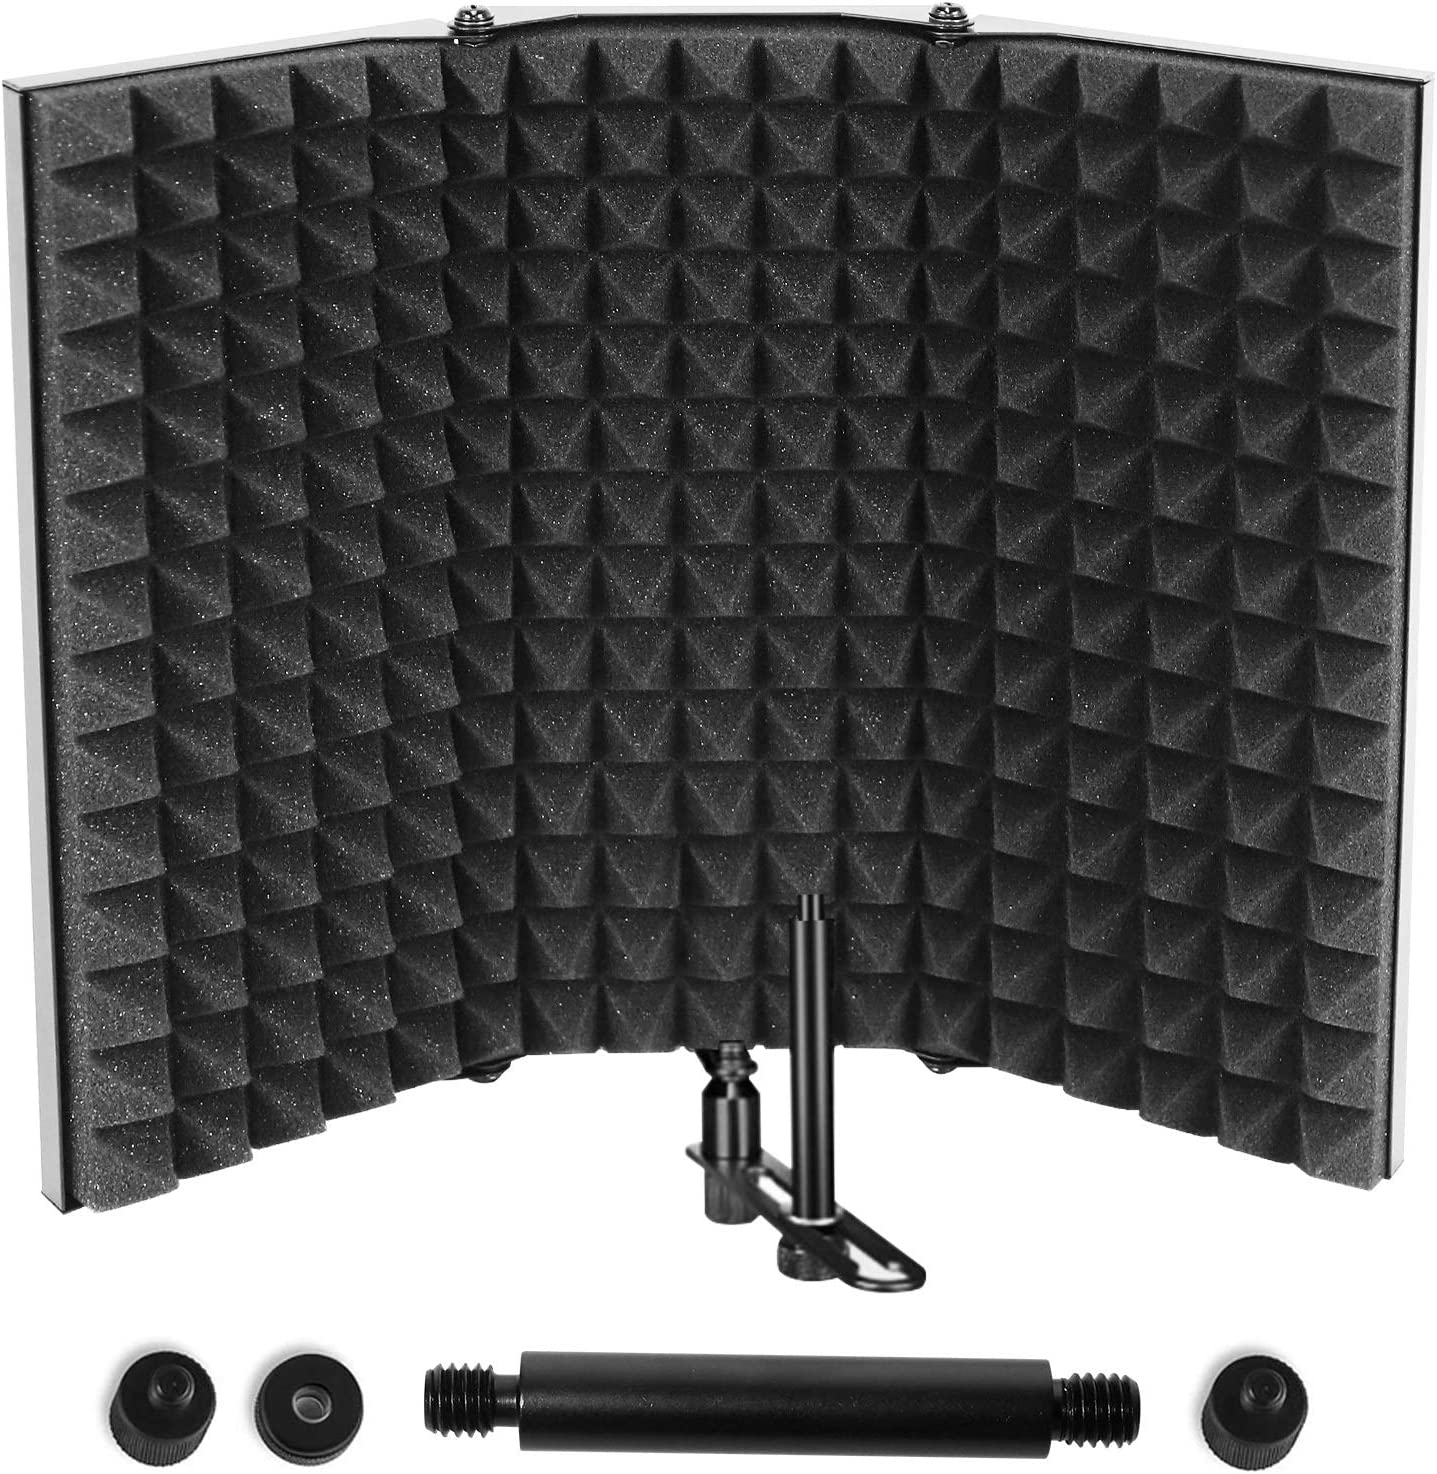 Microphone Isolation Shield, Professional Studio Recording Equipment for Sound Booth, High Density Absorbing Foam Front & Vented Metal Back Plate to Filter vocal, Suitable for Blue Yeti and Other Mic…